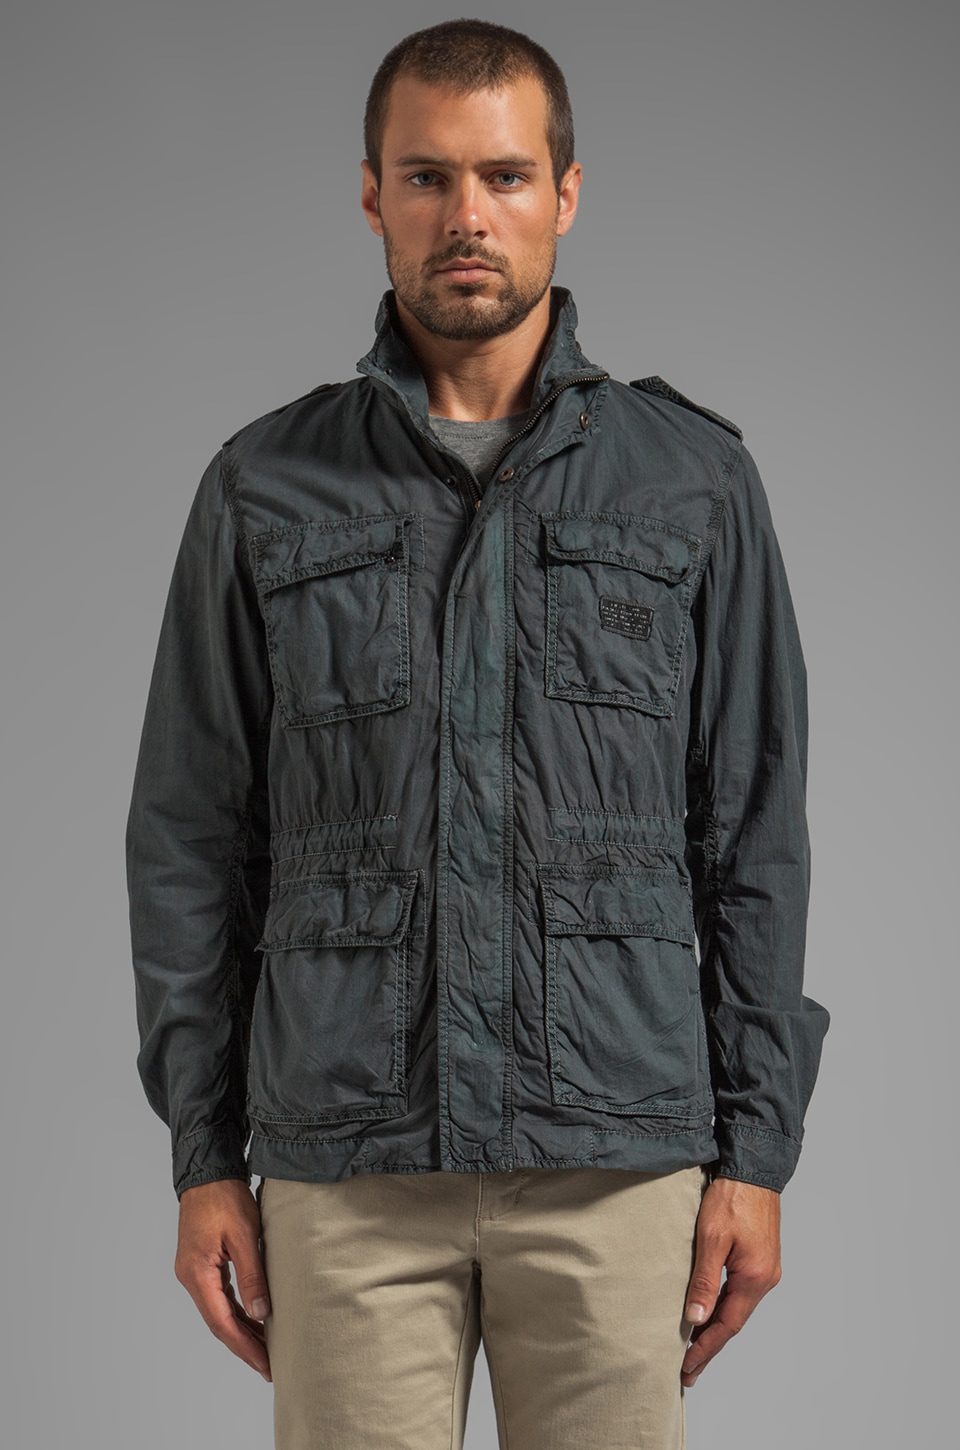 Diesel Jostral Jacket in Black